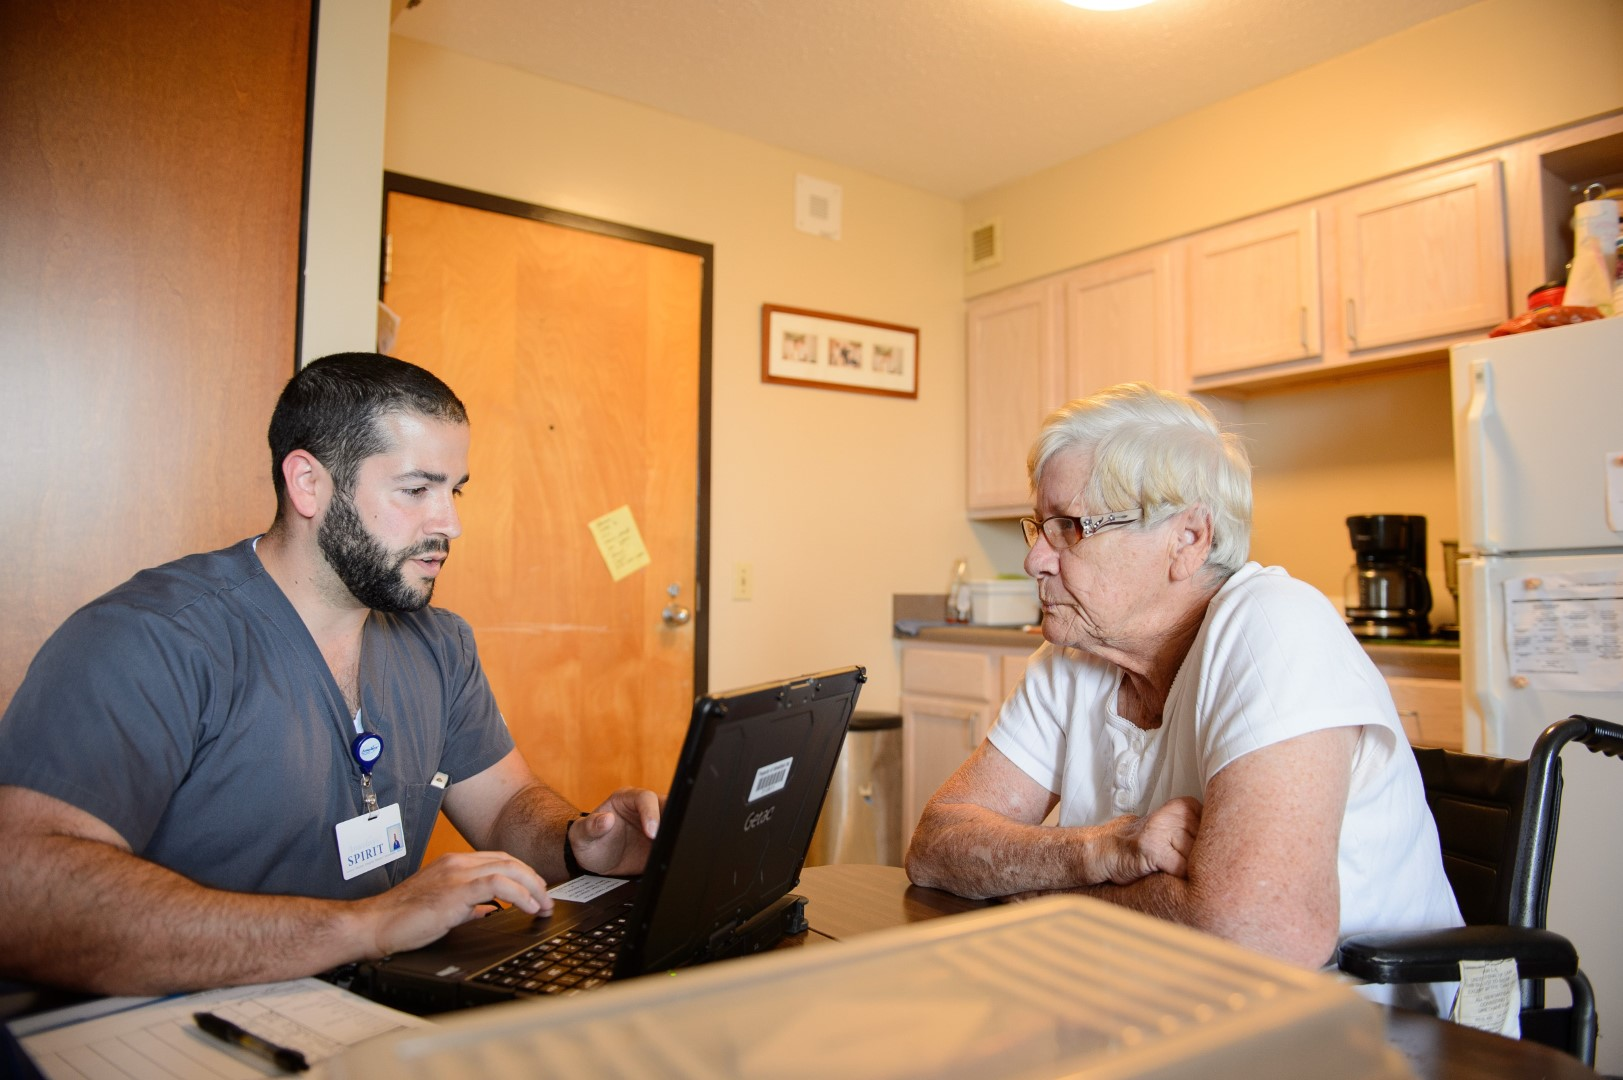 Eight Signs Your Gastroenterology Patients May Benefit from Home Health